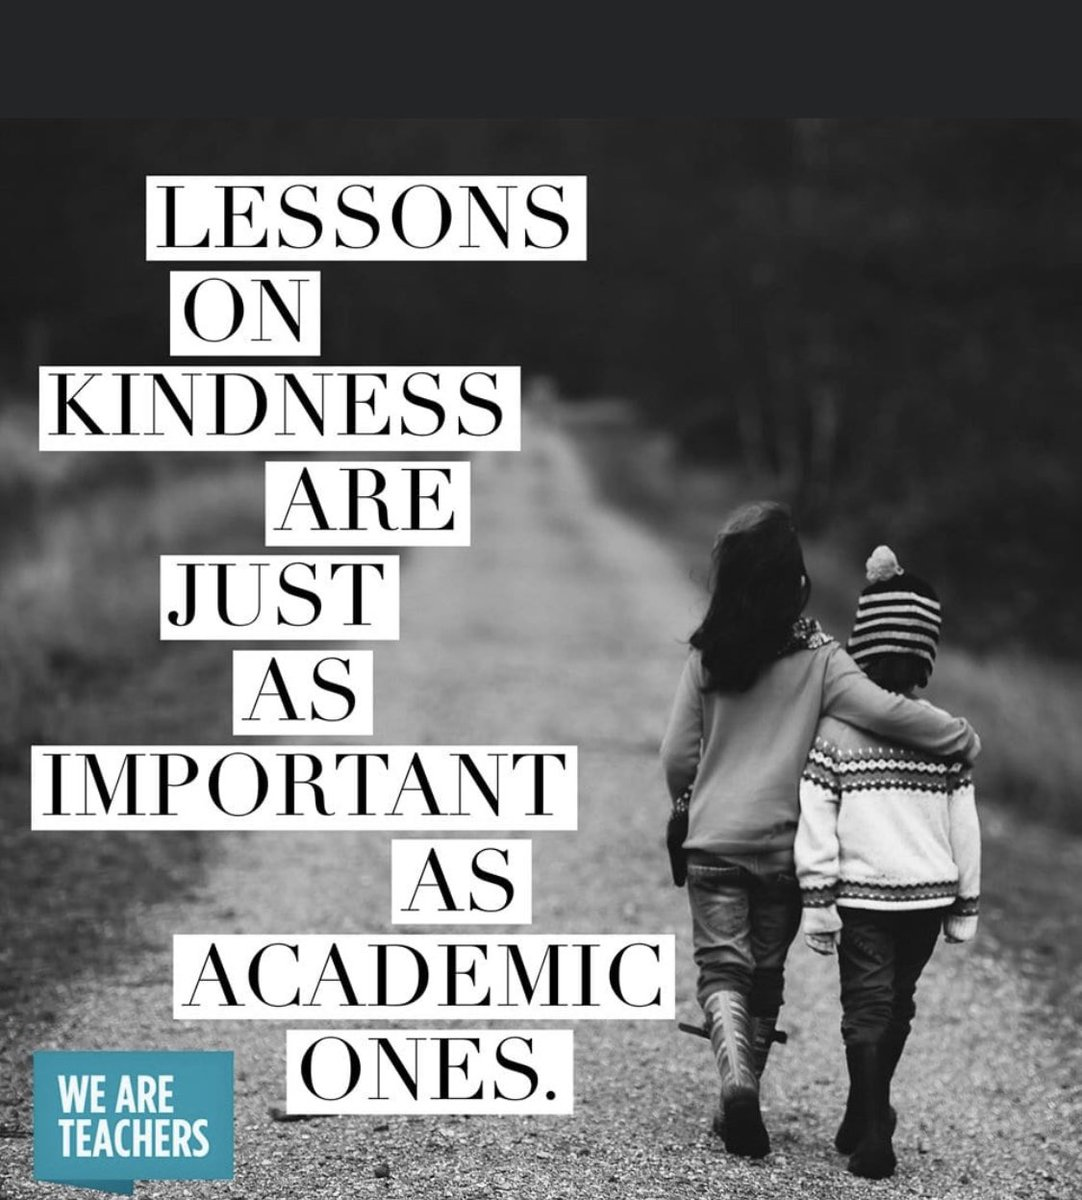 Maybe we need standardized testing on Kindness instead 🤷🏽‍♀️💯  #theworldneedsmore #betterhumans #KindnessMatters #SEL #treatpeoplewithkindness #priorities